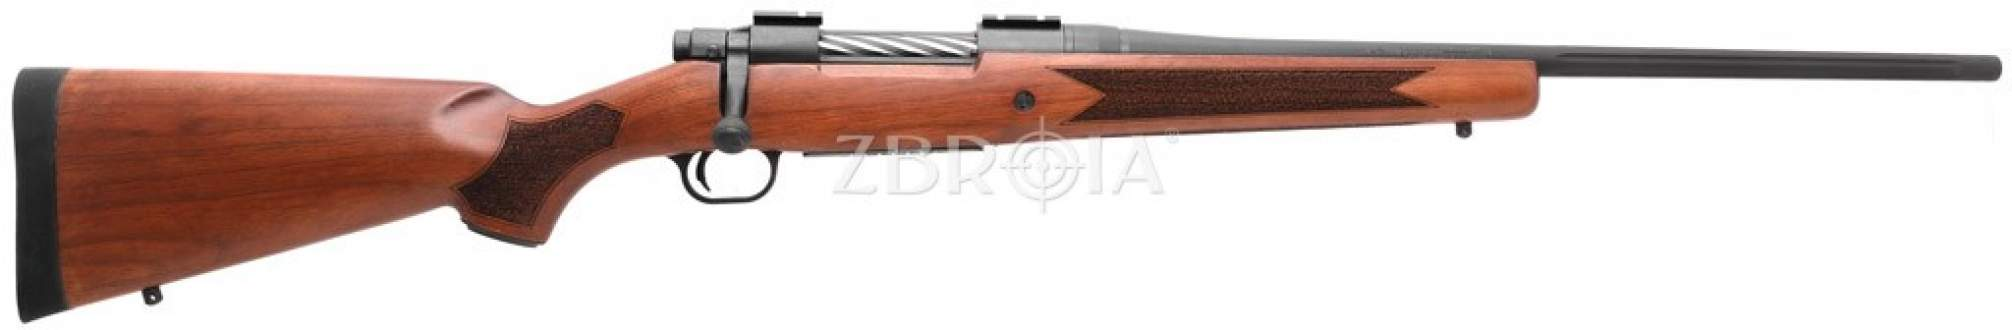 Карабин Mossberg Patriot Classic Walnut кал. 30-06